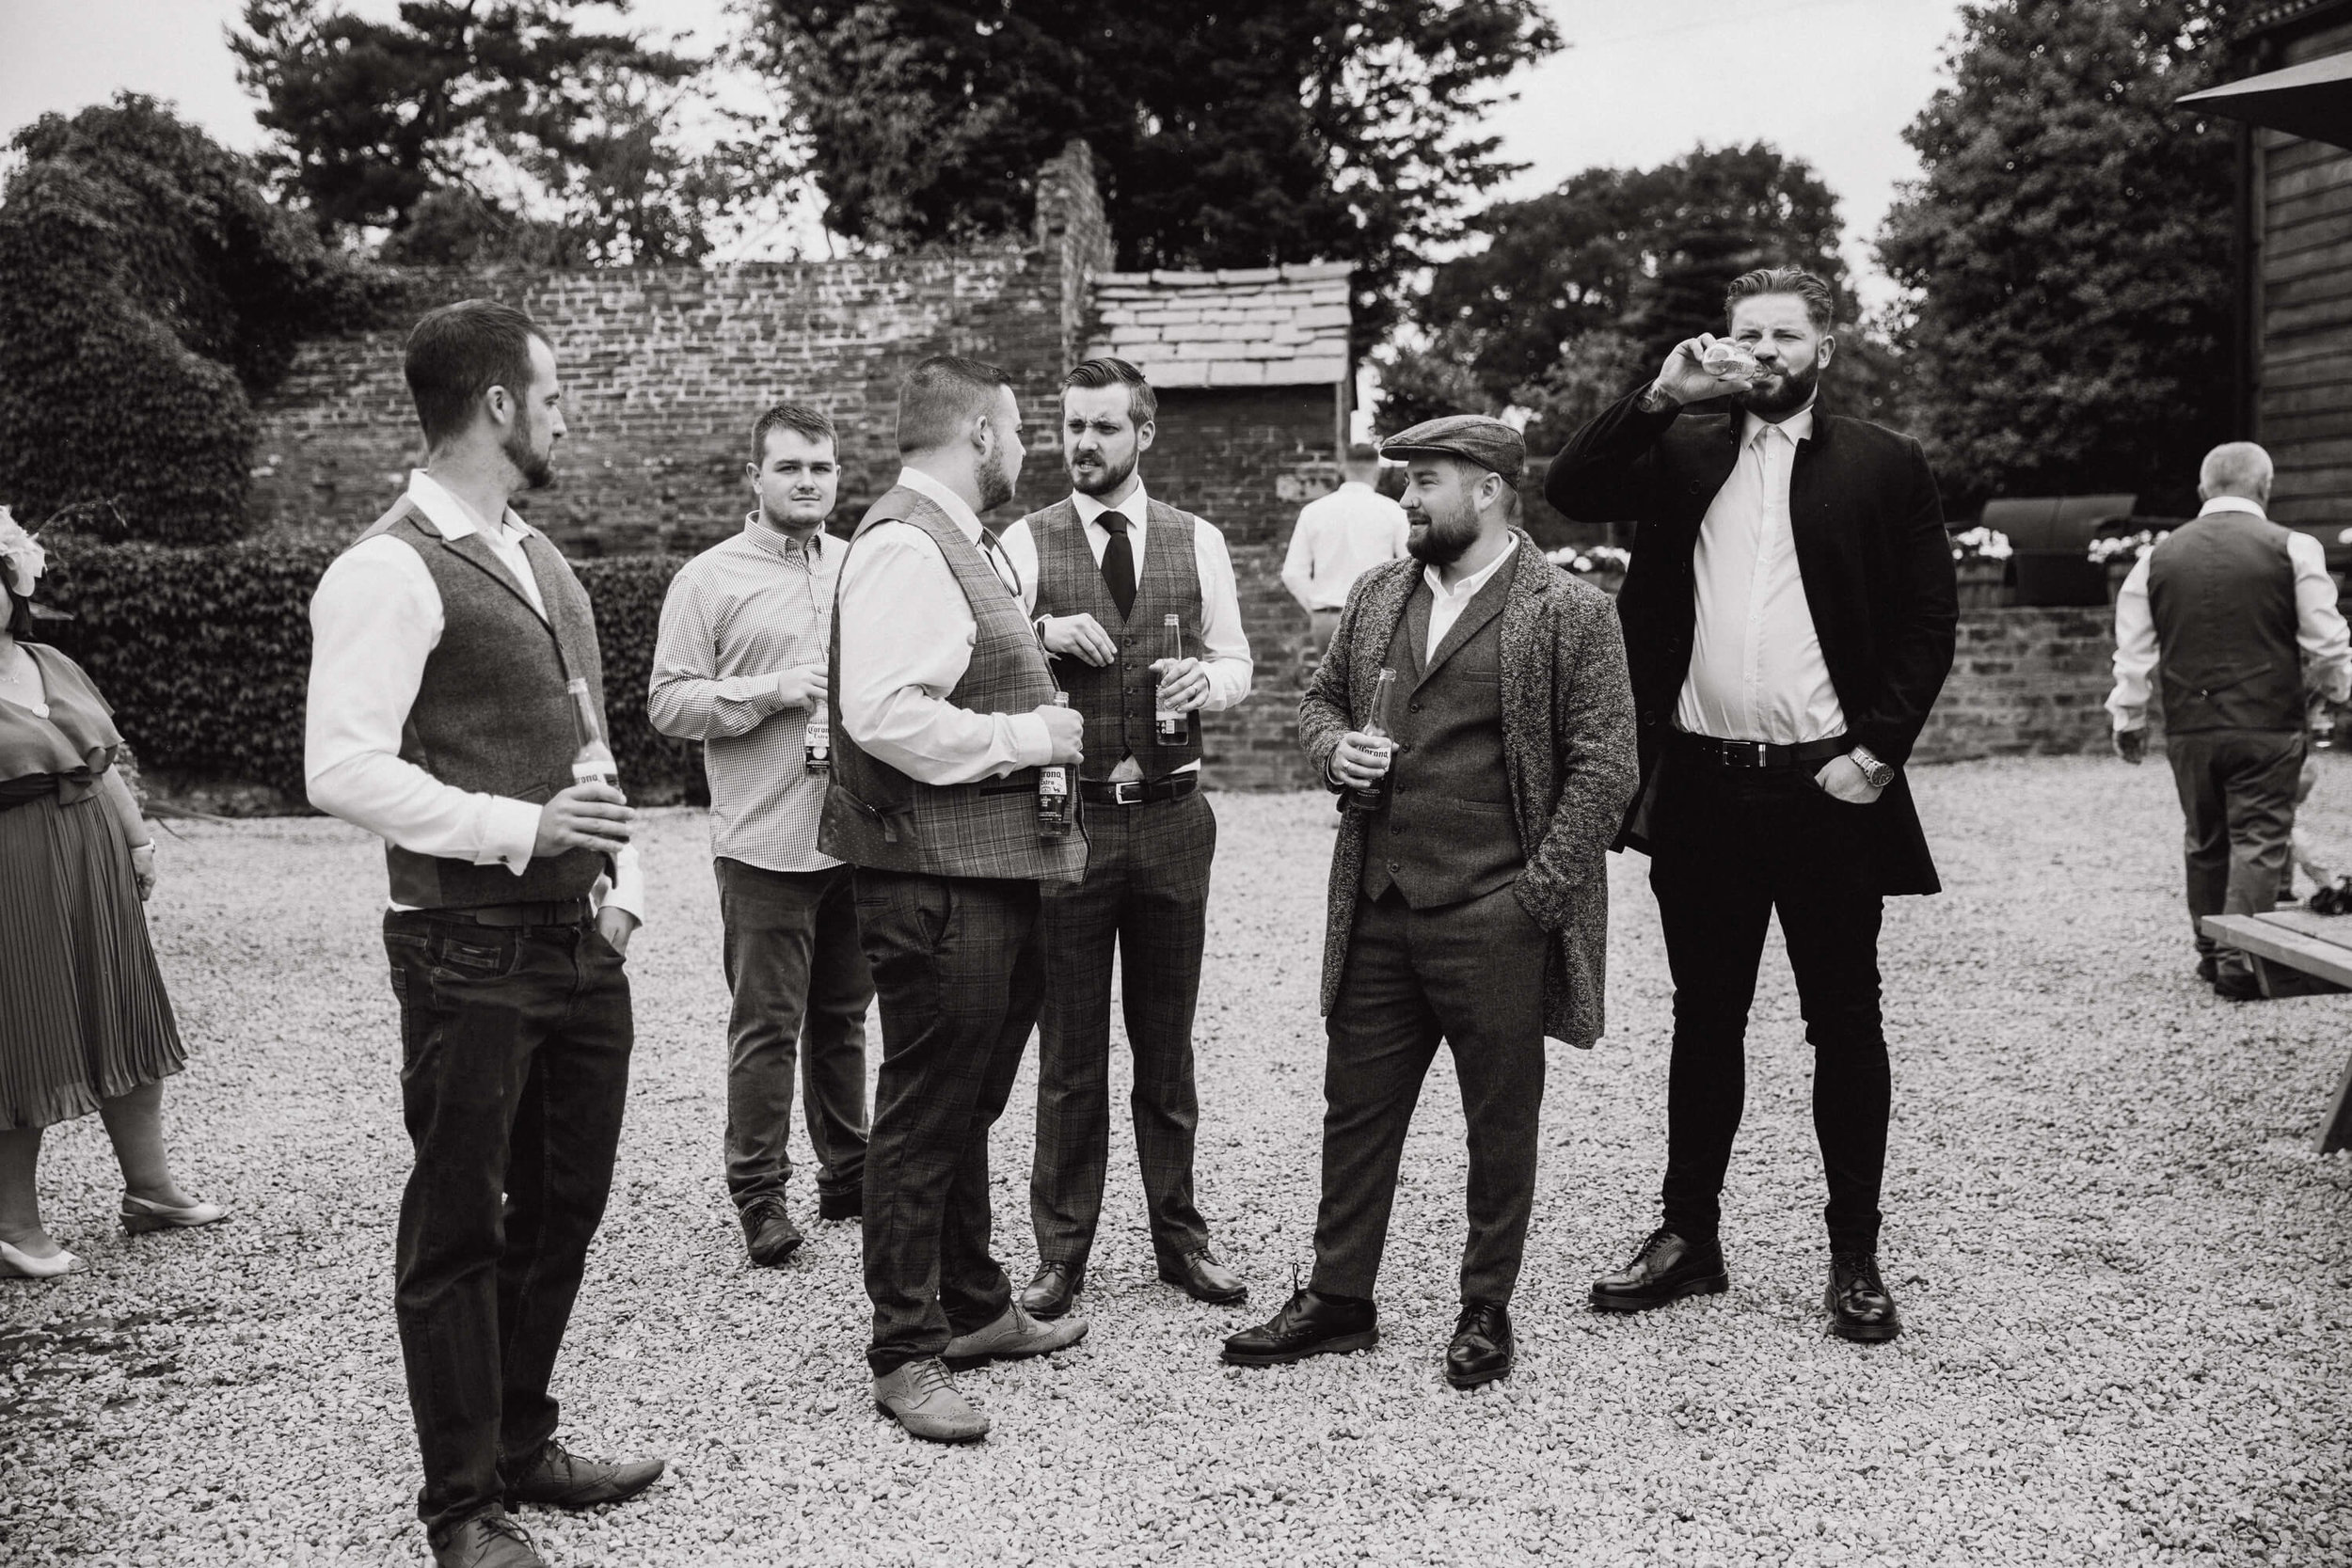 black and white monochrome photograph of groomsmen in tweed waiting for ceremony